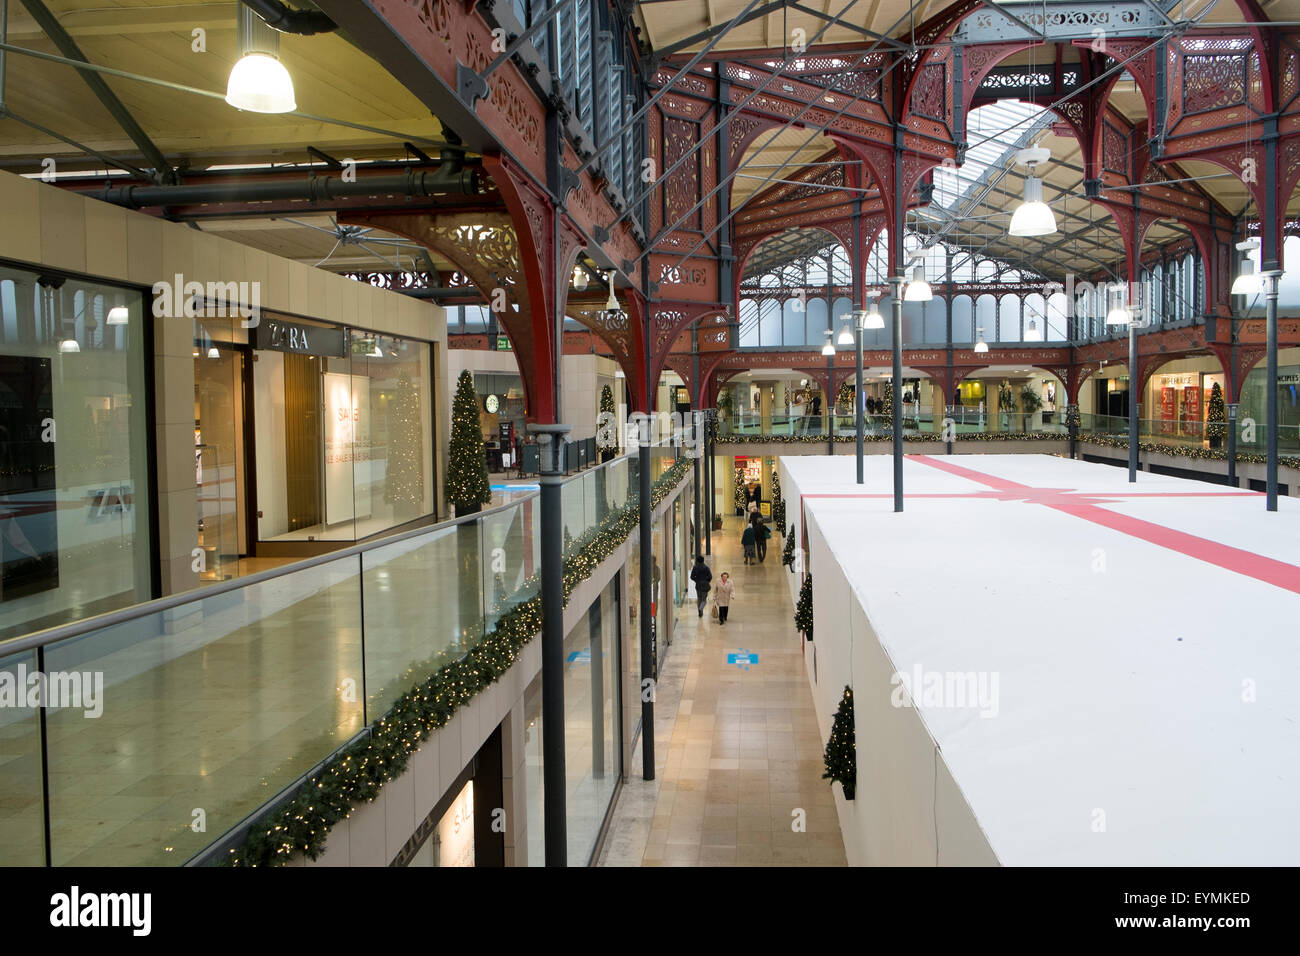 Market hall in the lancashire town of Bolton is a shopping mall , it was originally opened in 1855, lancashire,england - Stock Image